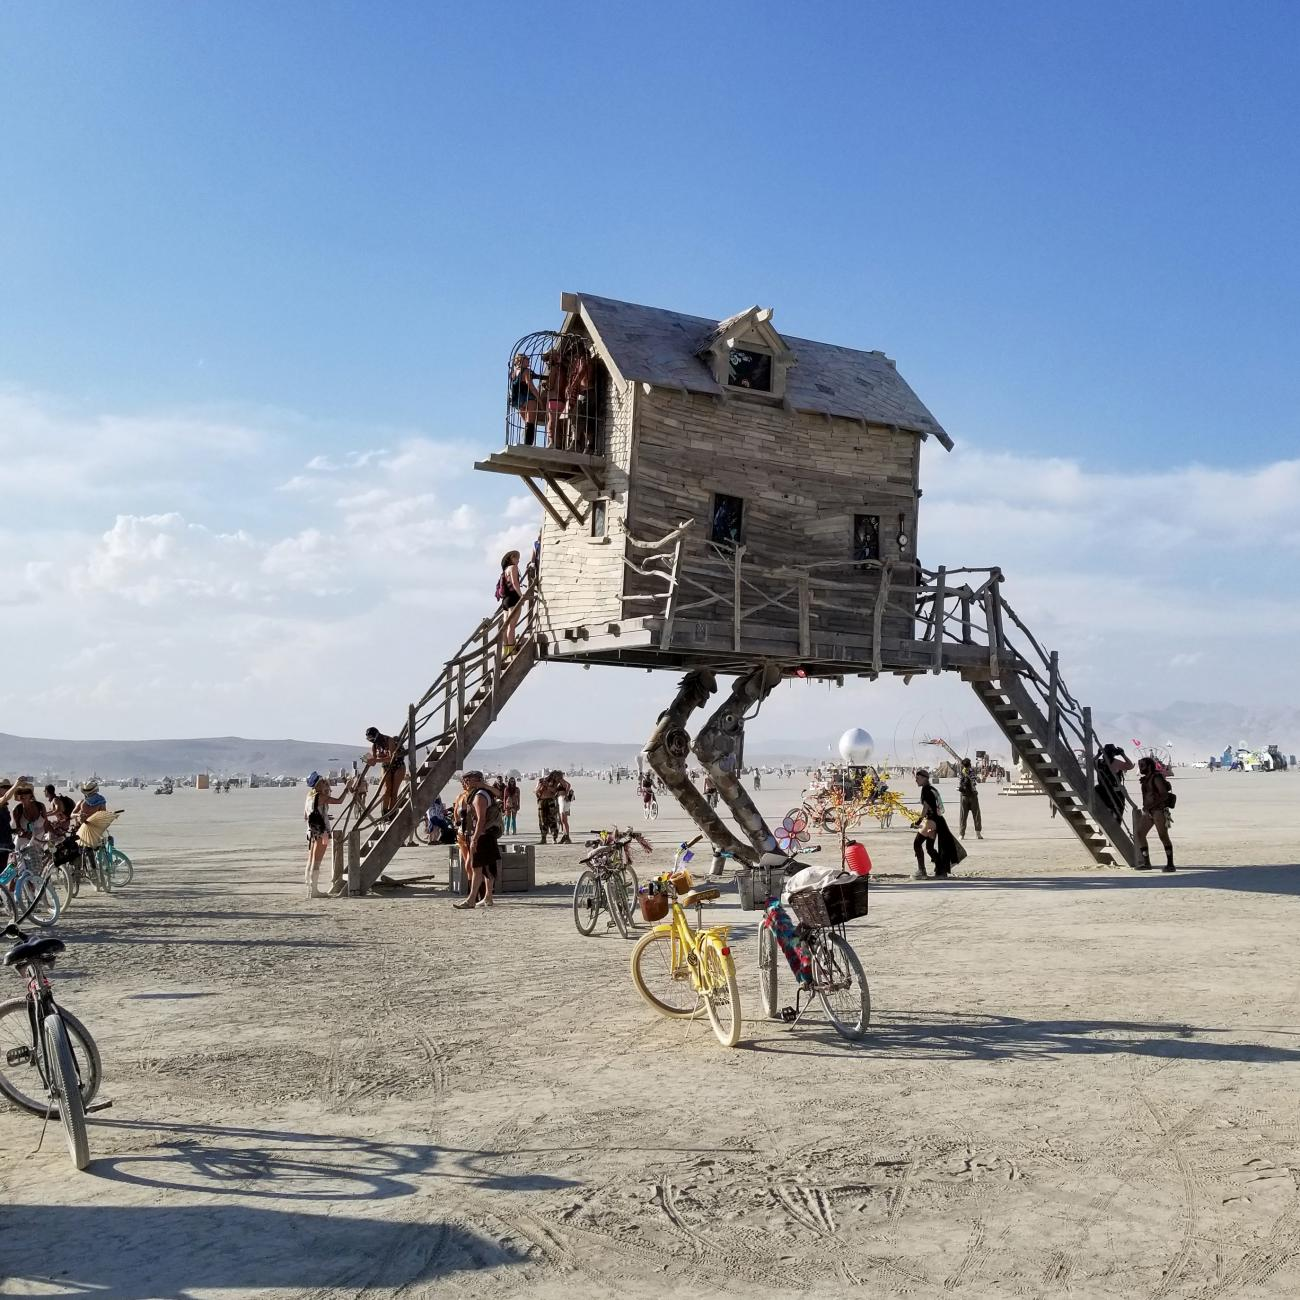 A photograph of a house with robot legs in the desert.